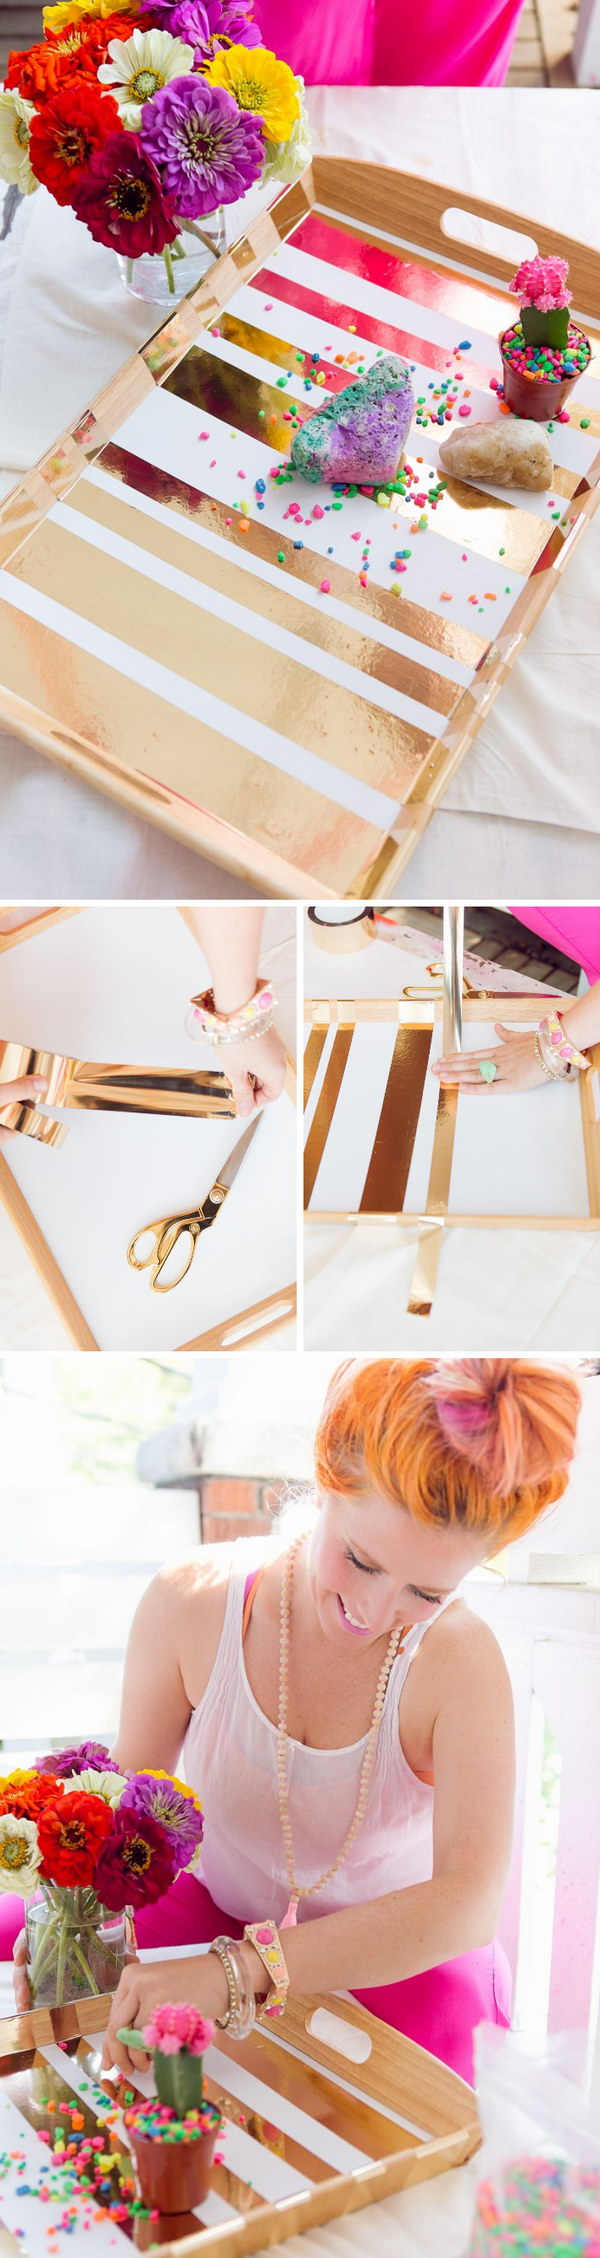 DIY Gold Taped Serving Tray.